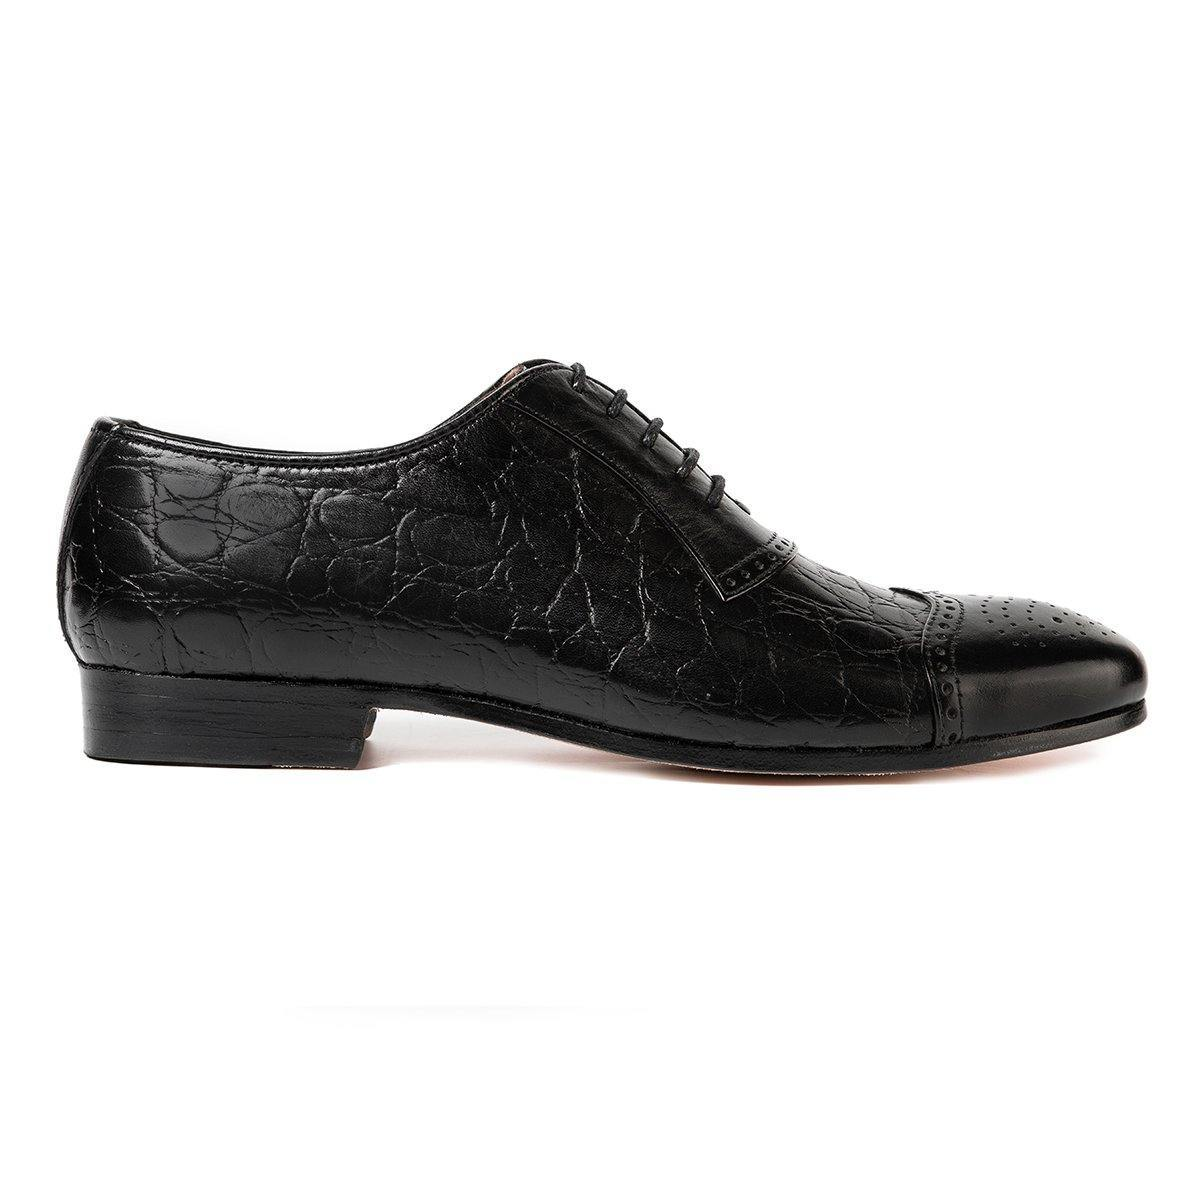 Nile Croc - Oxfords in  Black - TLC - The Leather Crafts